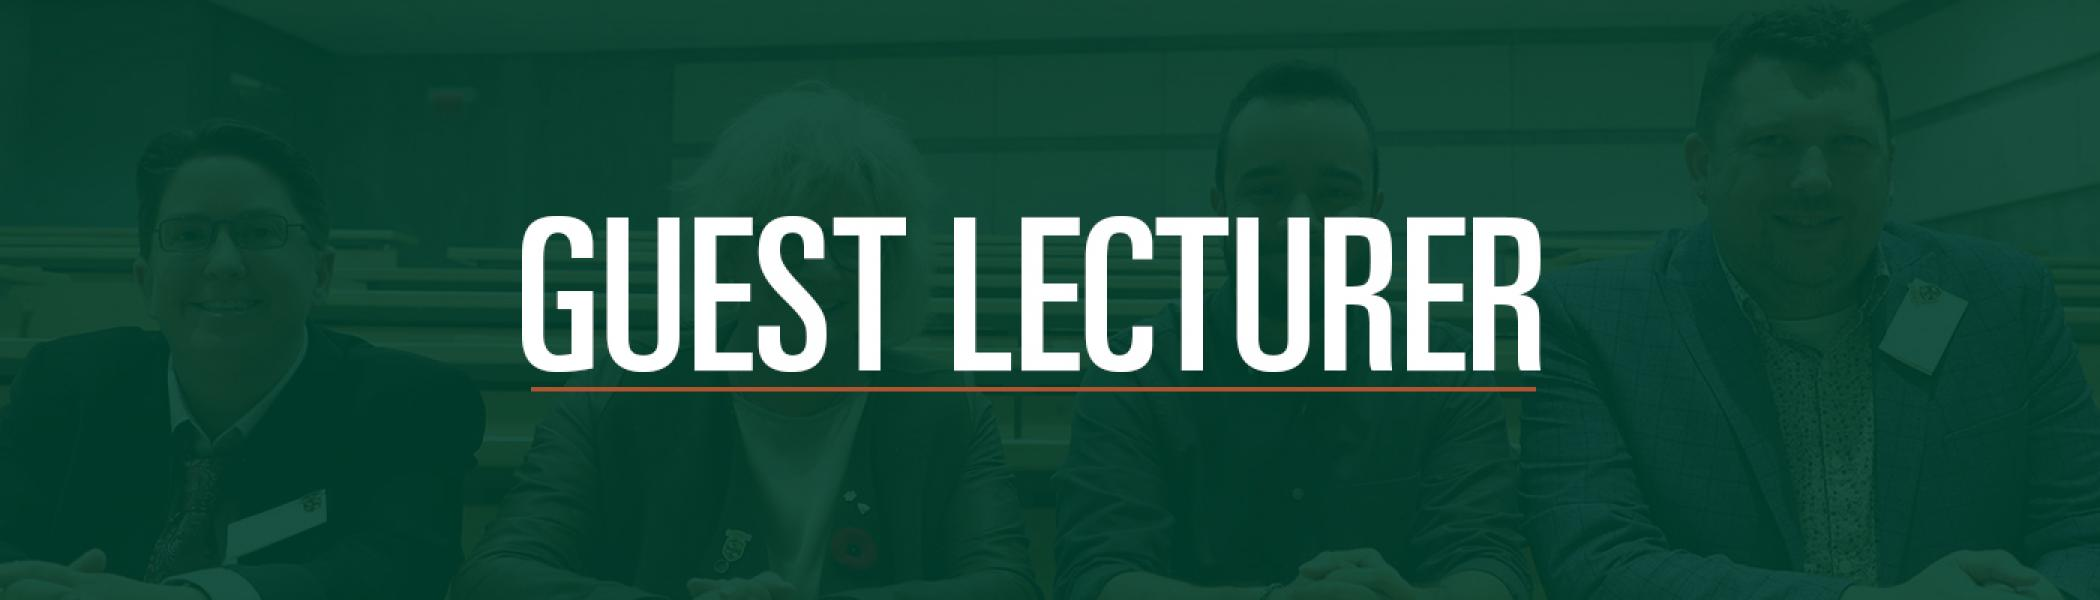 Green background with people faded behind, text 'Guest Lecturer' over top.